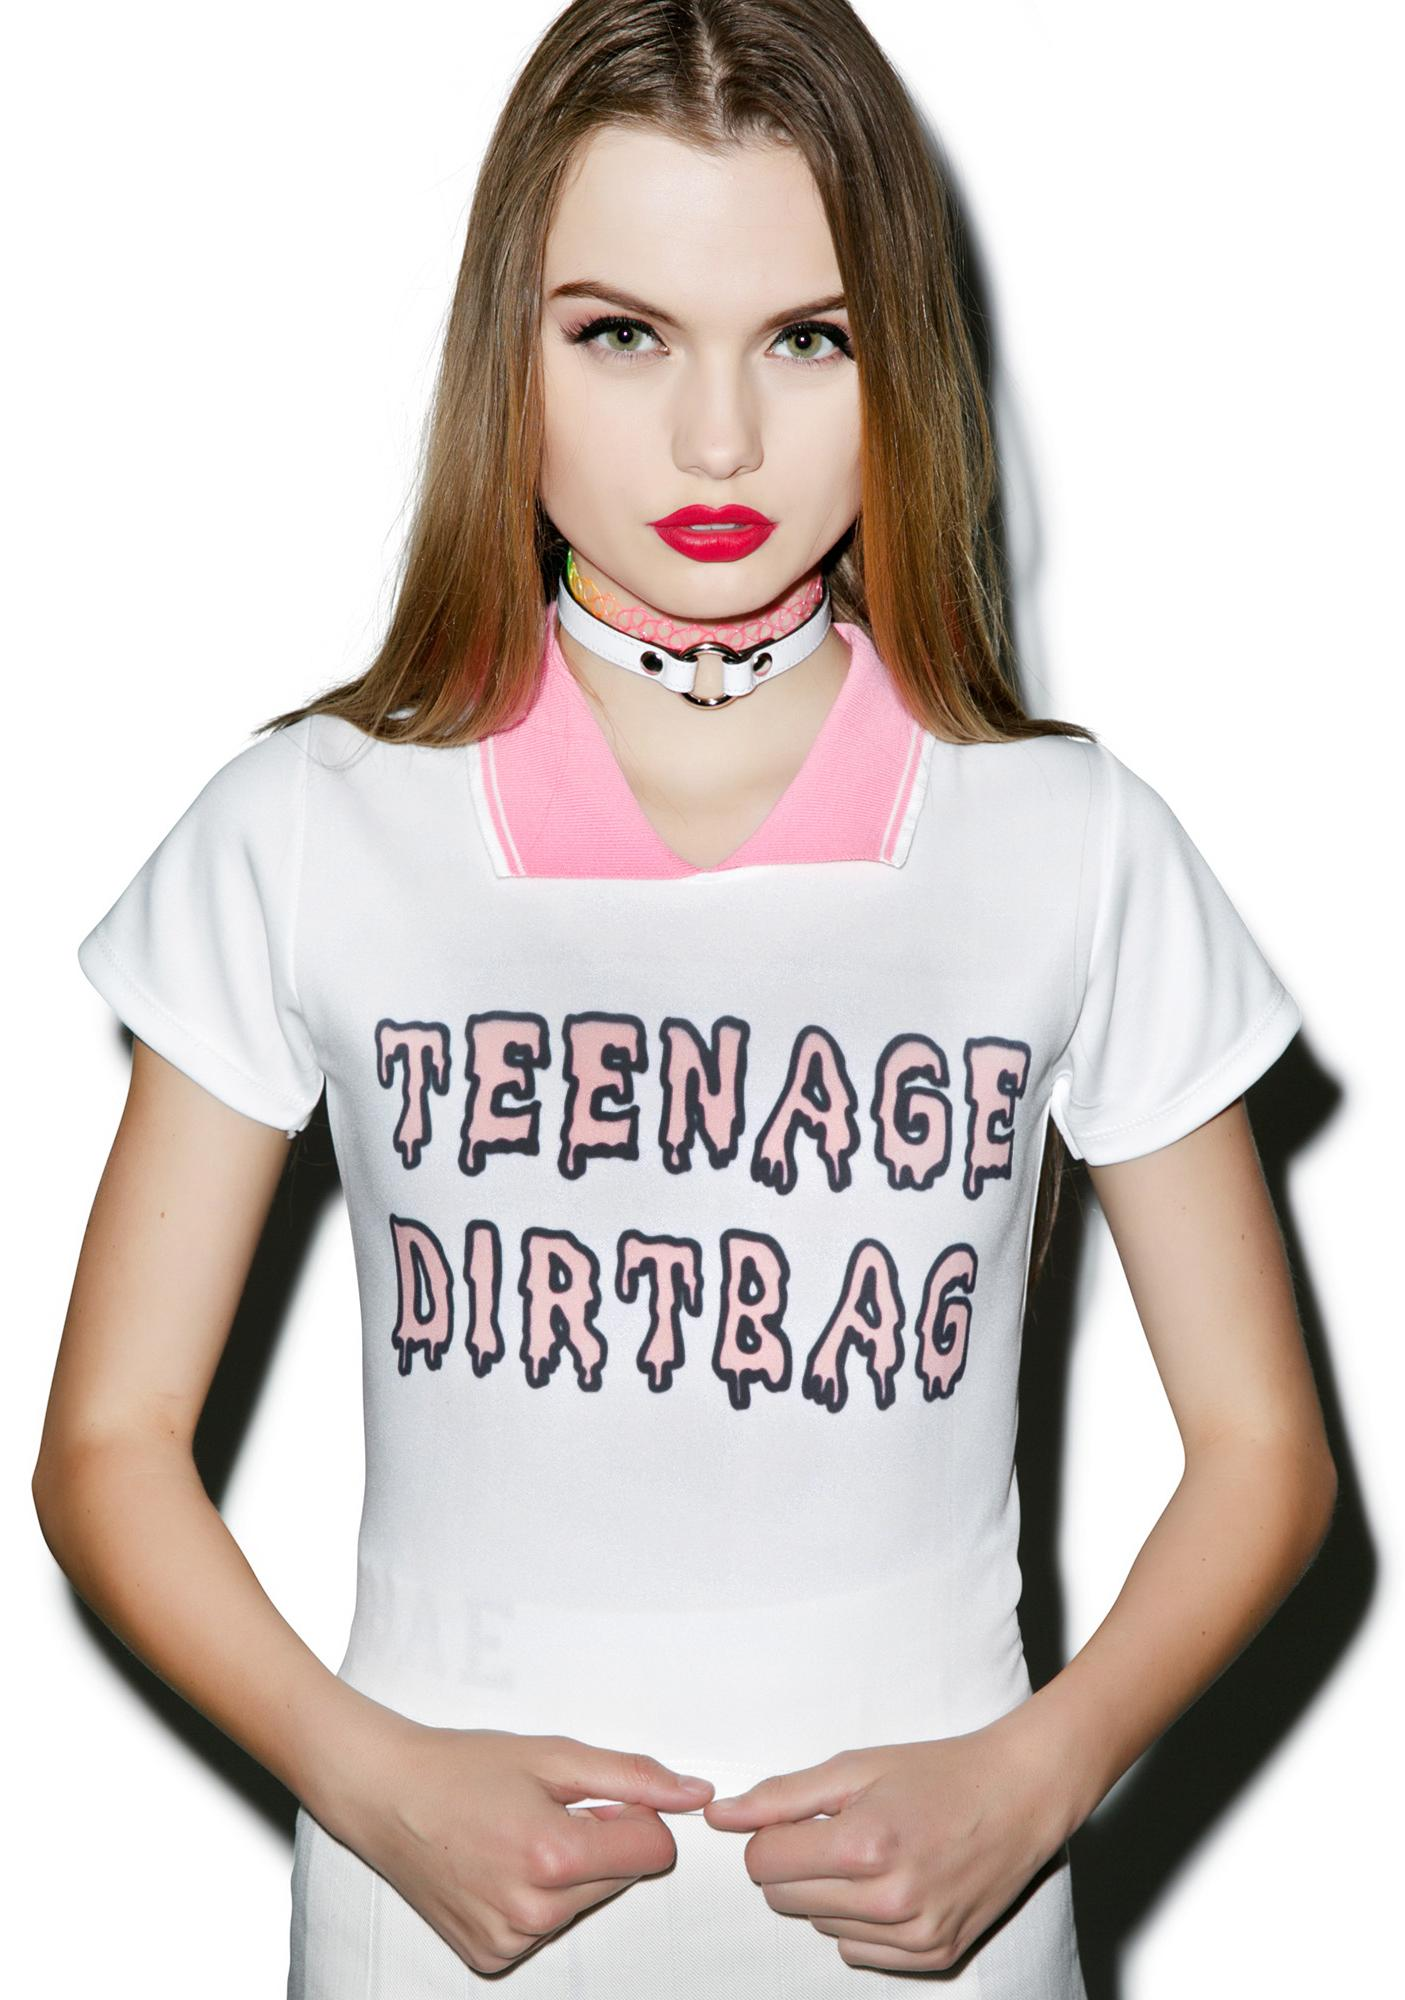 Teenage Dirtbag Polo Tee